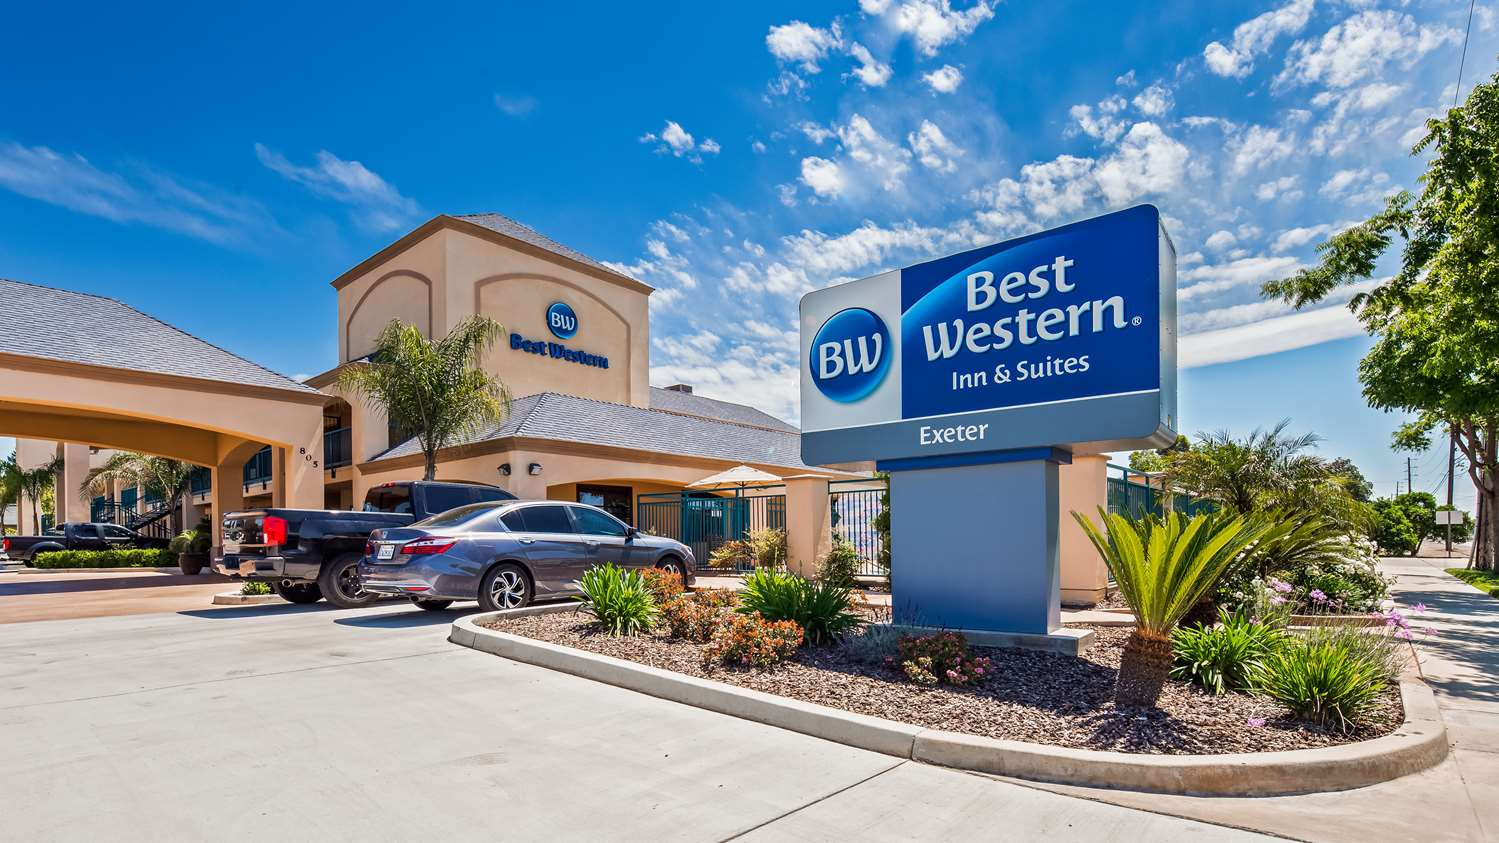 Best Western Inn & Suites Exeter